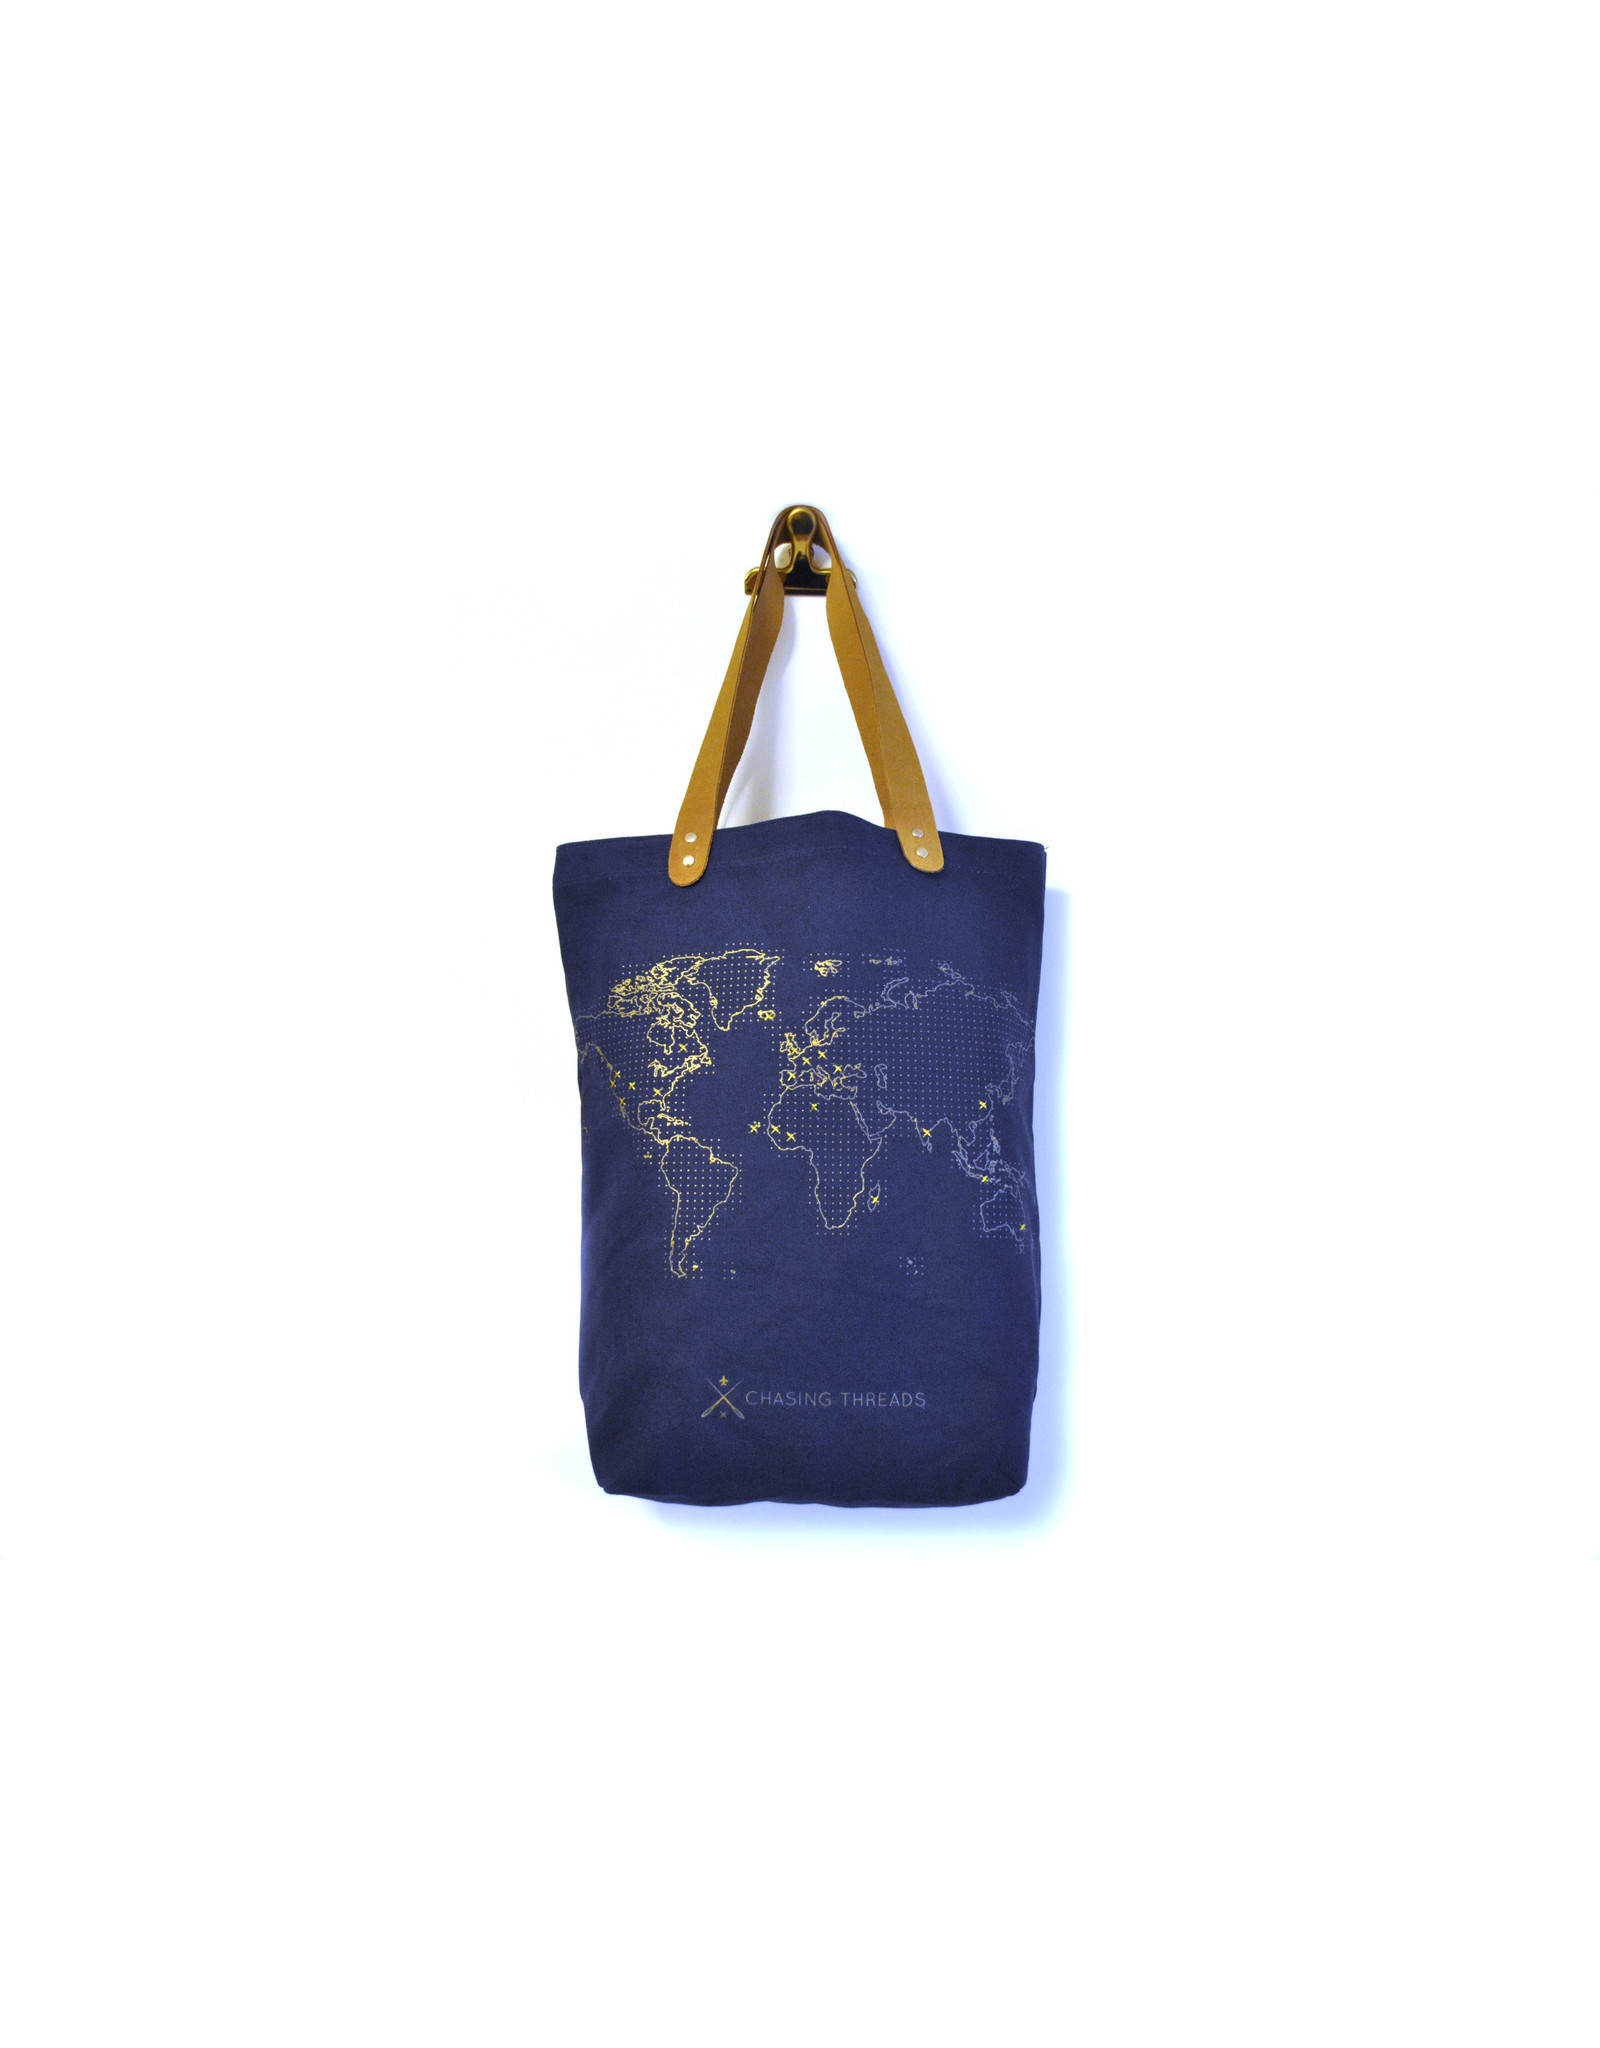 Chasing Threads tote bag with stitching pattern